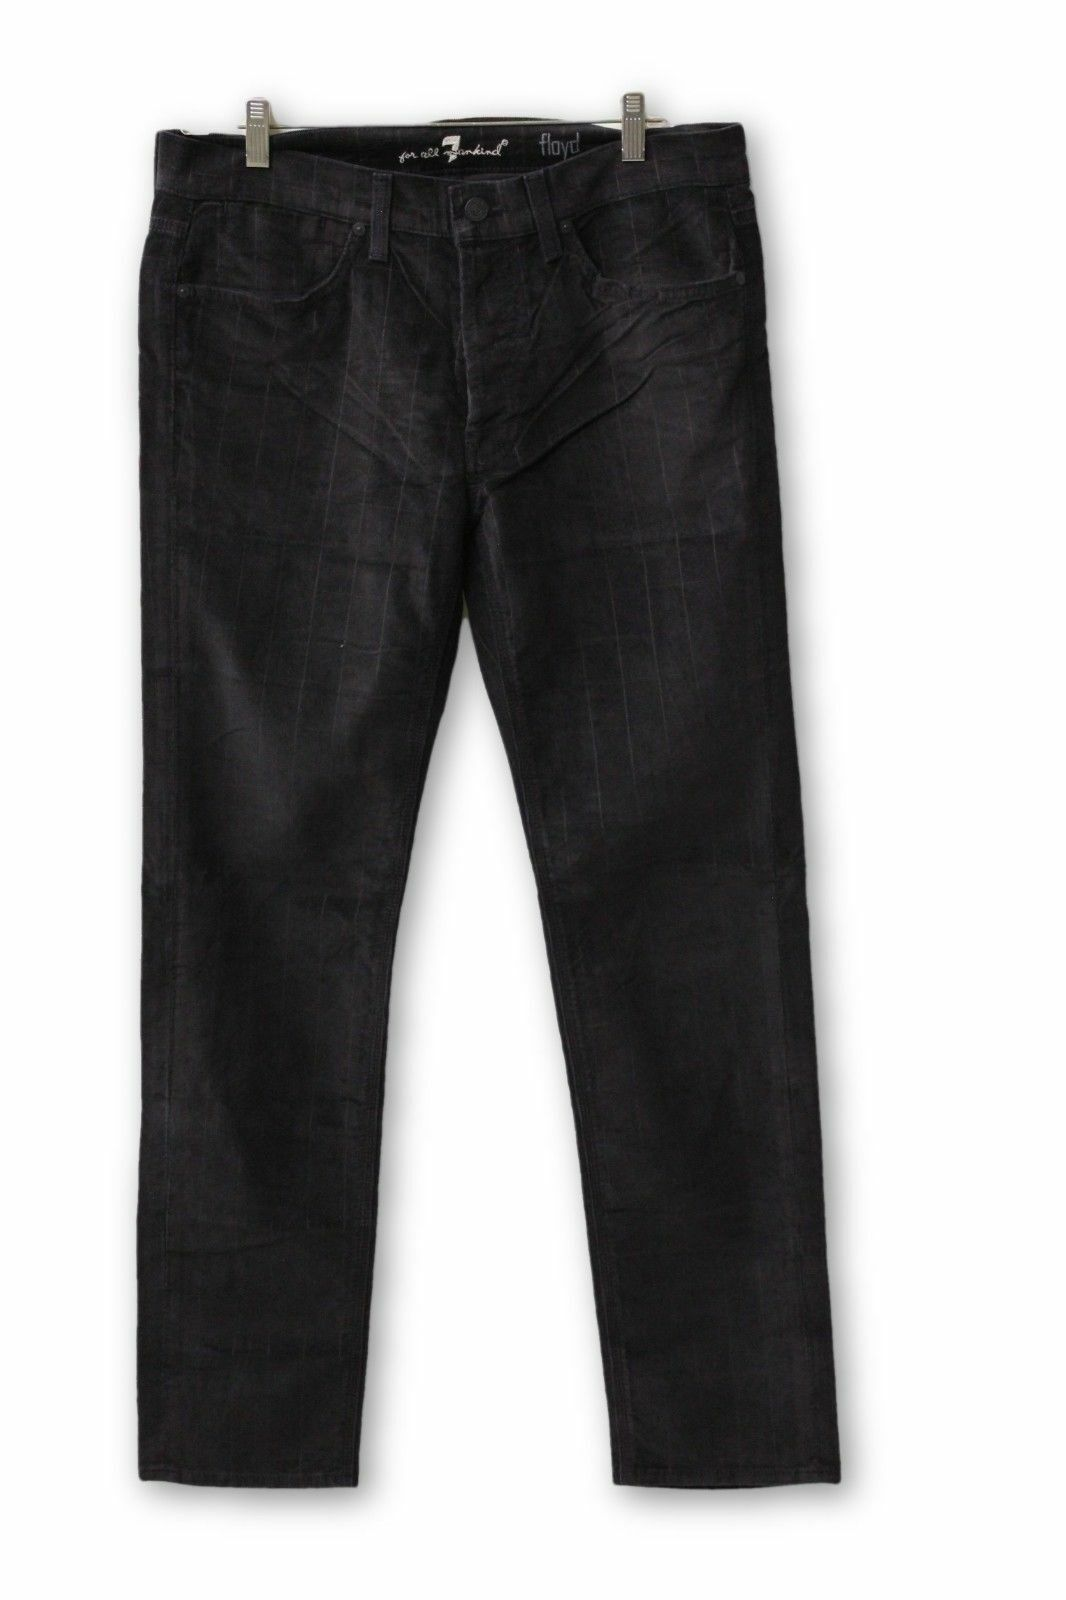 7 For All Mankind Men's Floyd Corduroy 32x32 Jeans, NWT